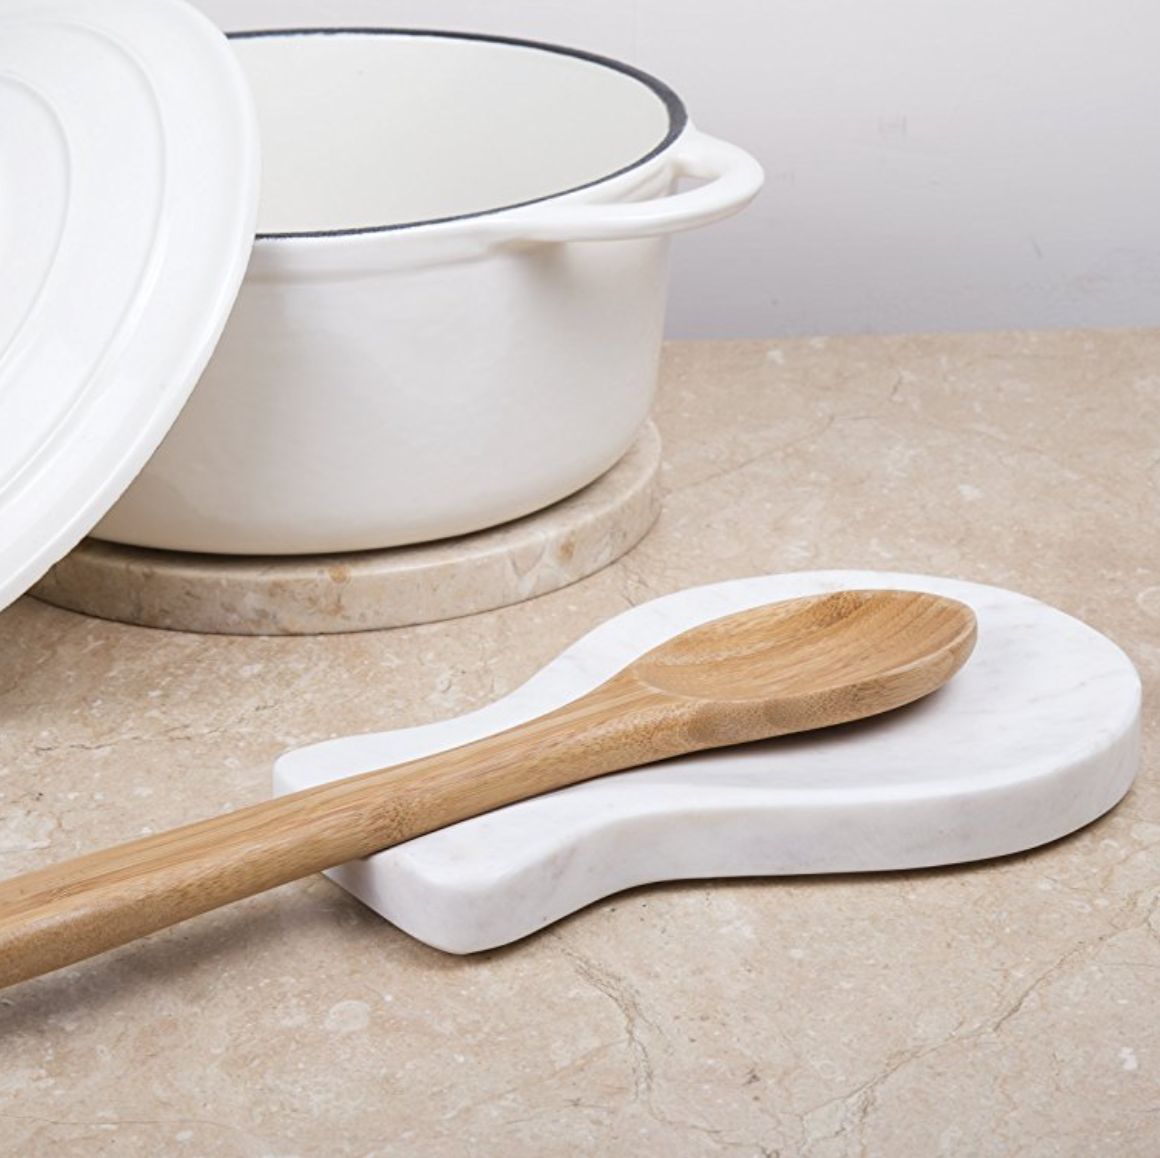 White Natural Marble Spoon Rest  Spoon Rest are made of natural marble stone, it does not absorb any moisture ,odors or fats from food or soup. As marble stone is valued for its contrasting veins of color which can add aesthetics on your kitchen counter top.